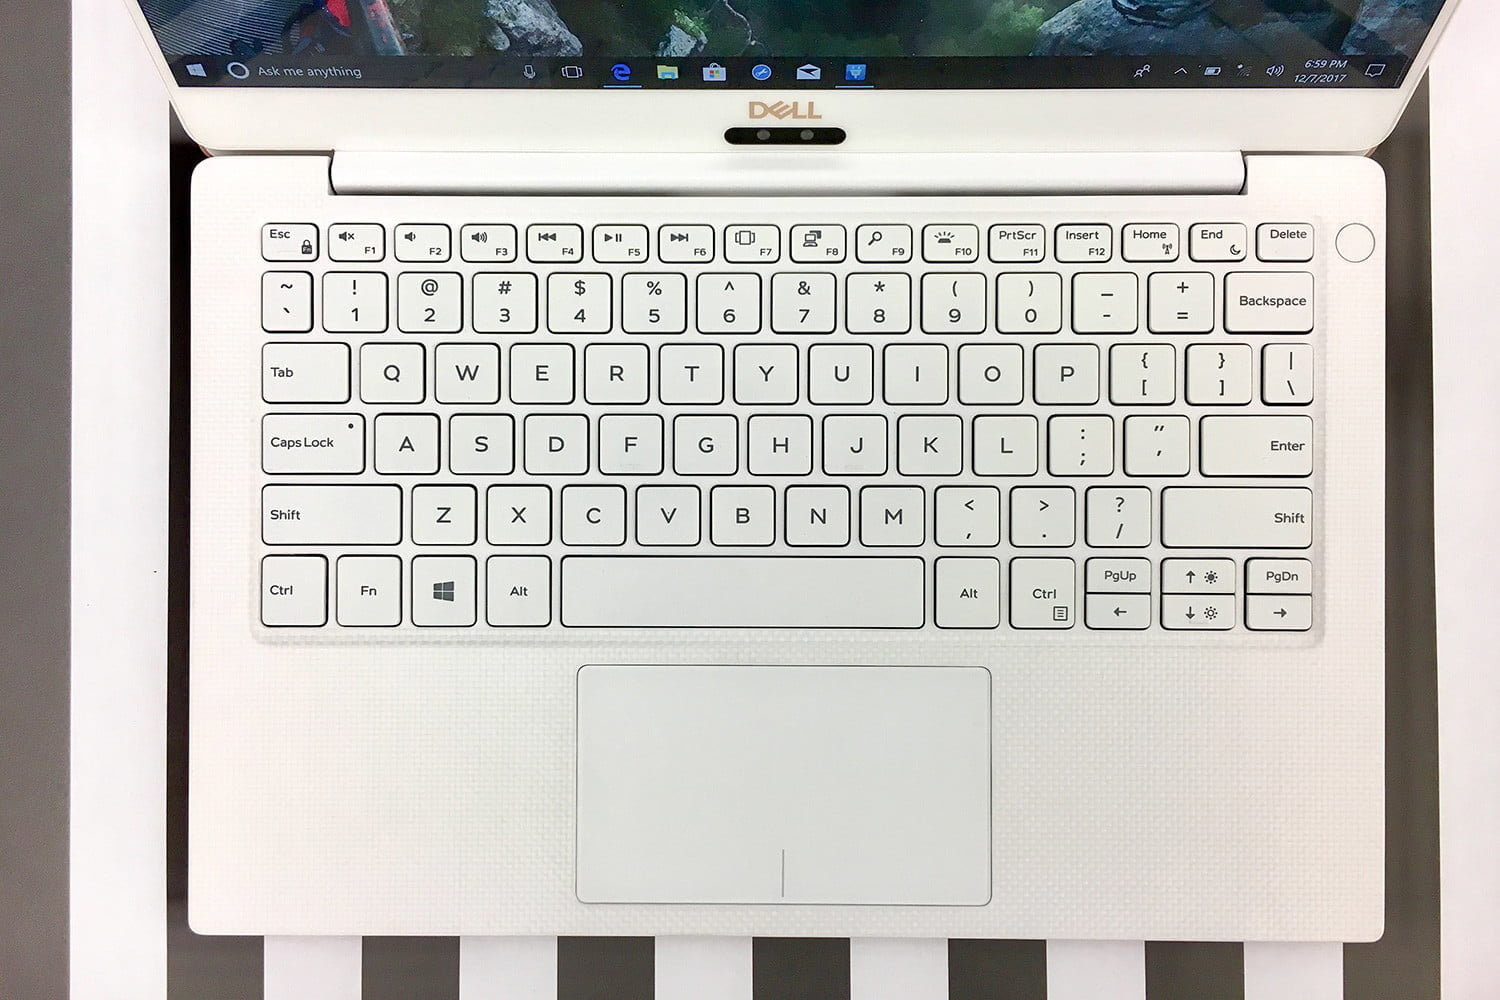 Dell XPS 13 stripe keyboard